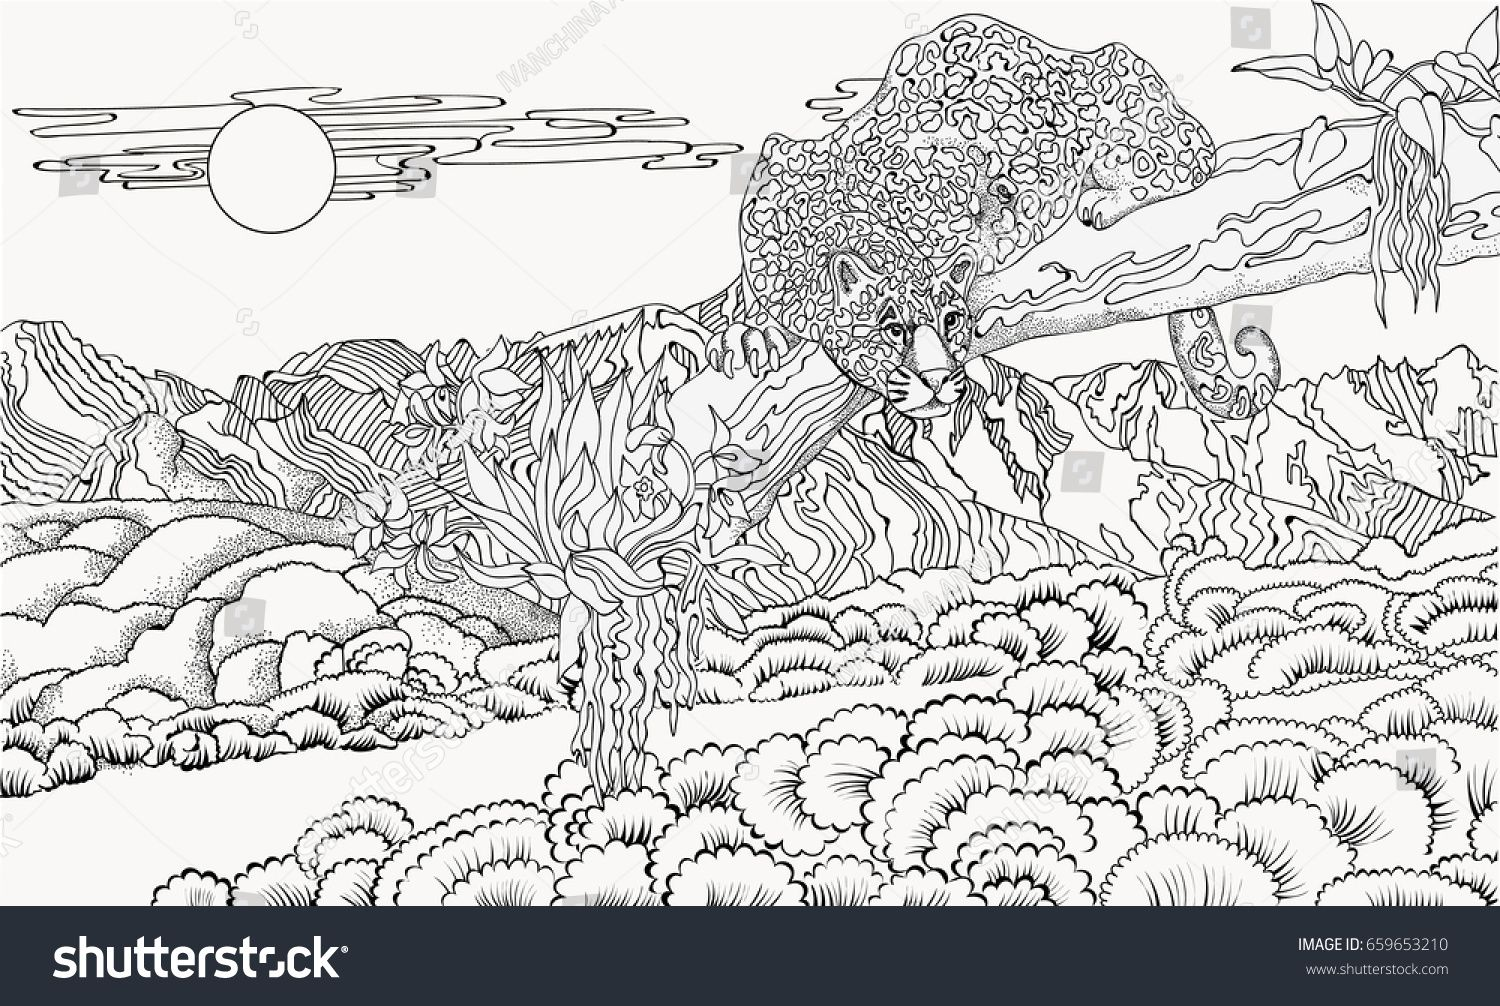 Detailed Landscape Coloring Pages For Adults%20(54)